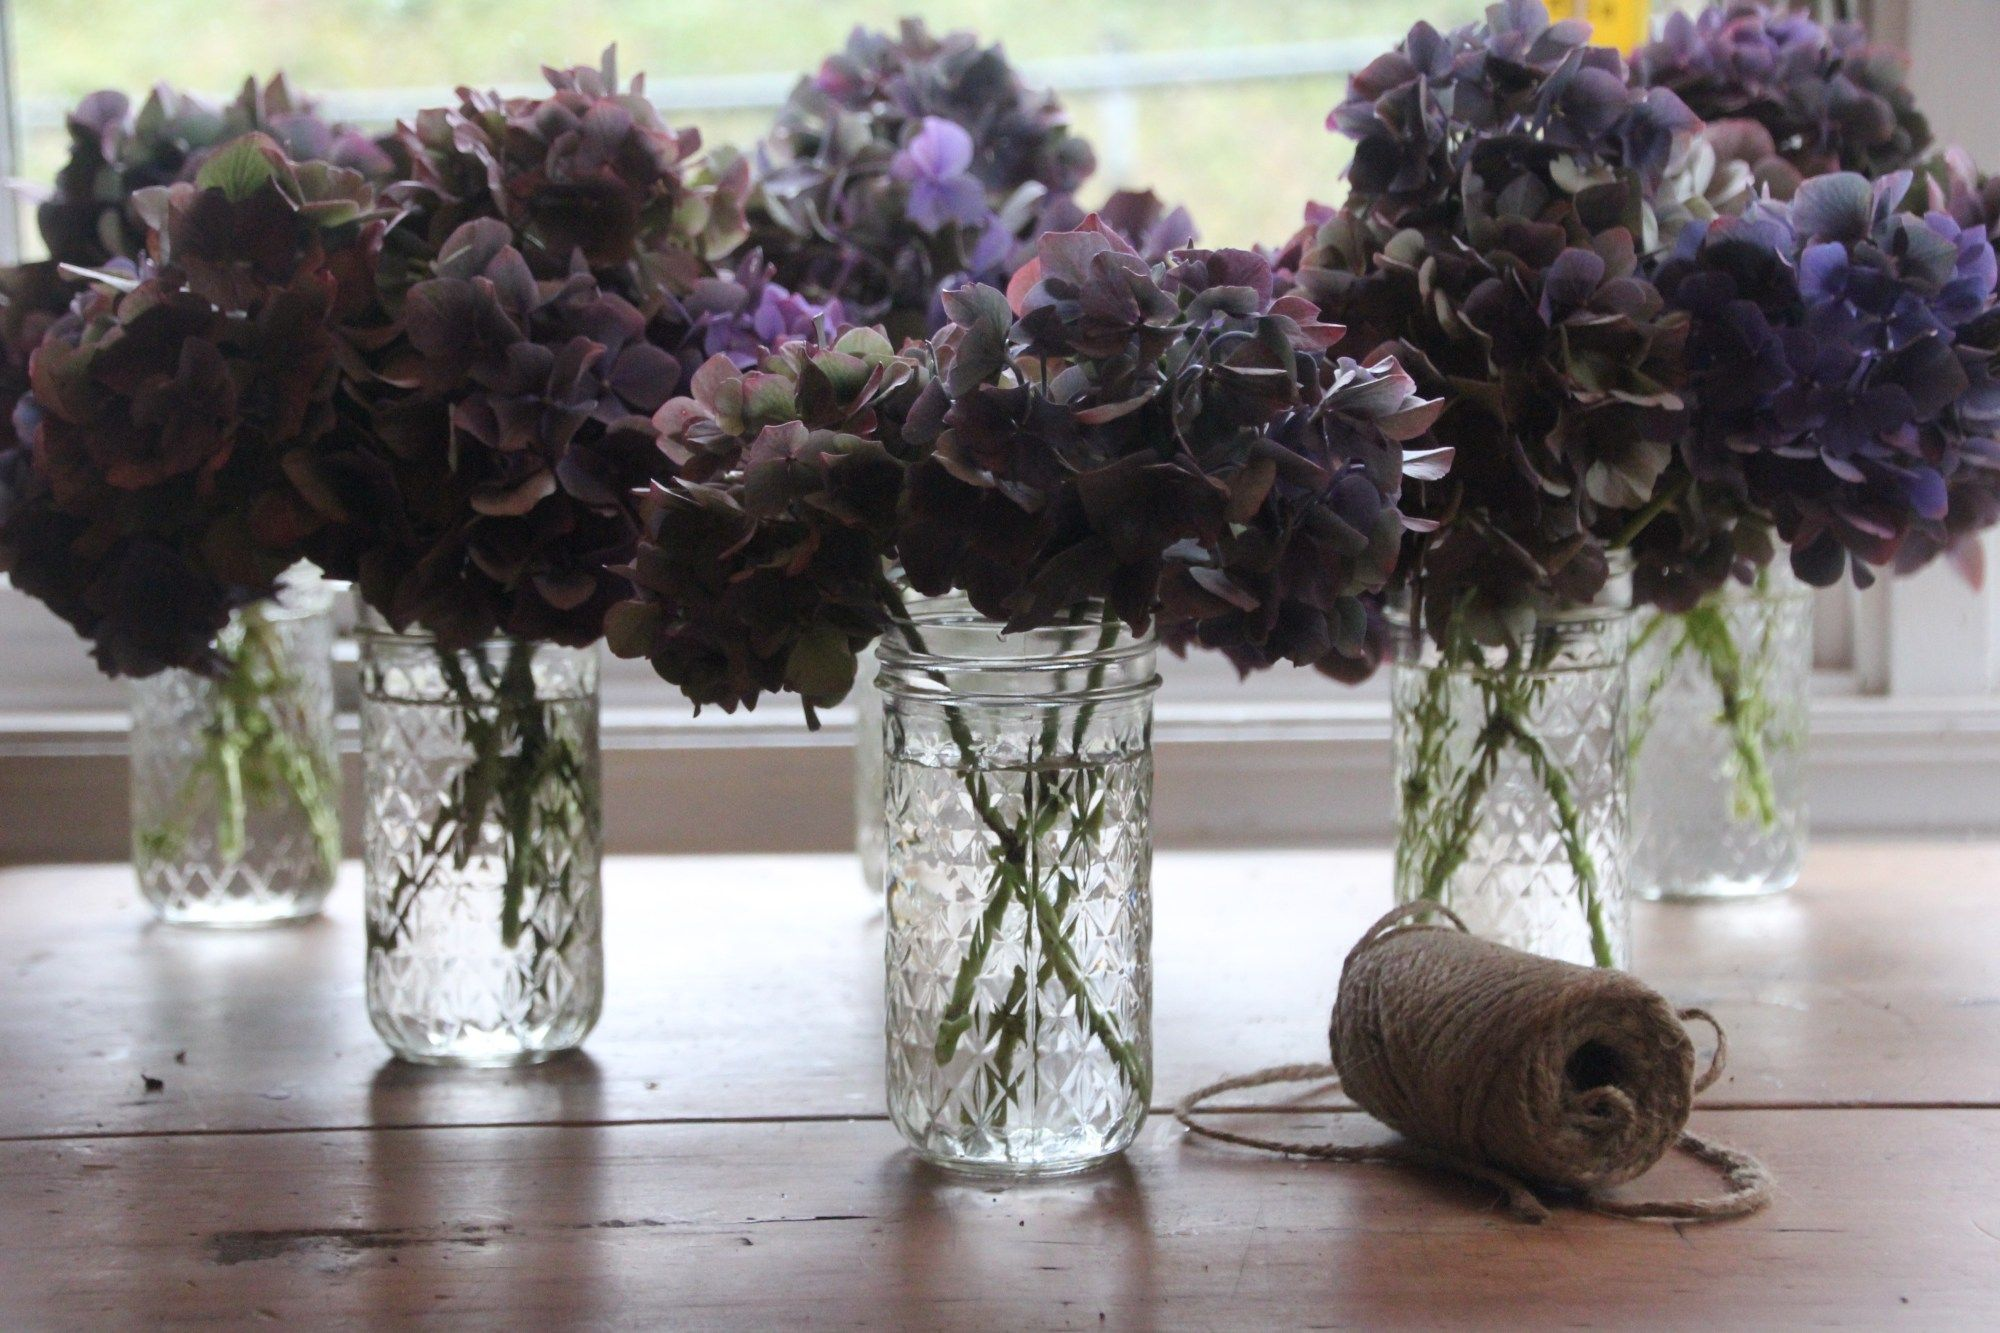 How To Dry Hydrangeas And Make A Dried Hydrangea Wreath Dried Hydrangeas Dried Flowers Dried Flowers Diy